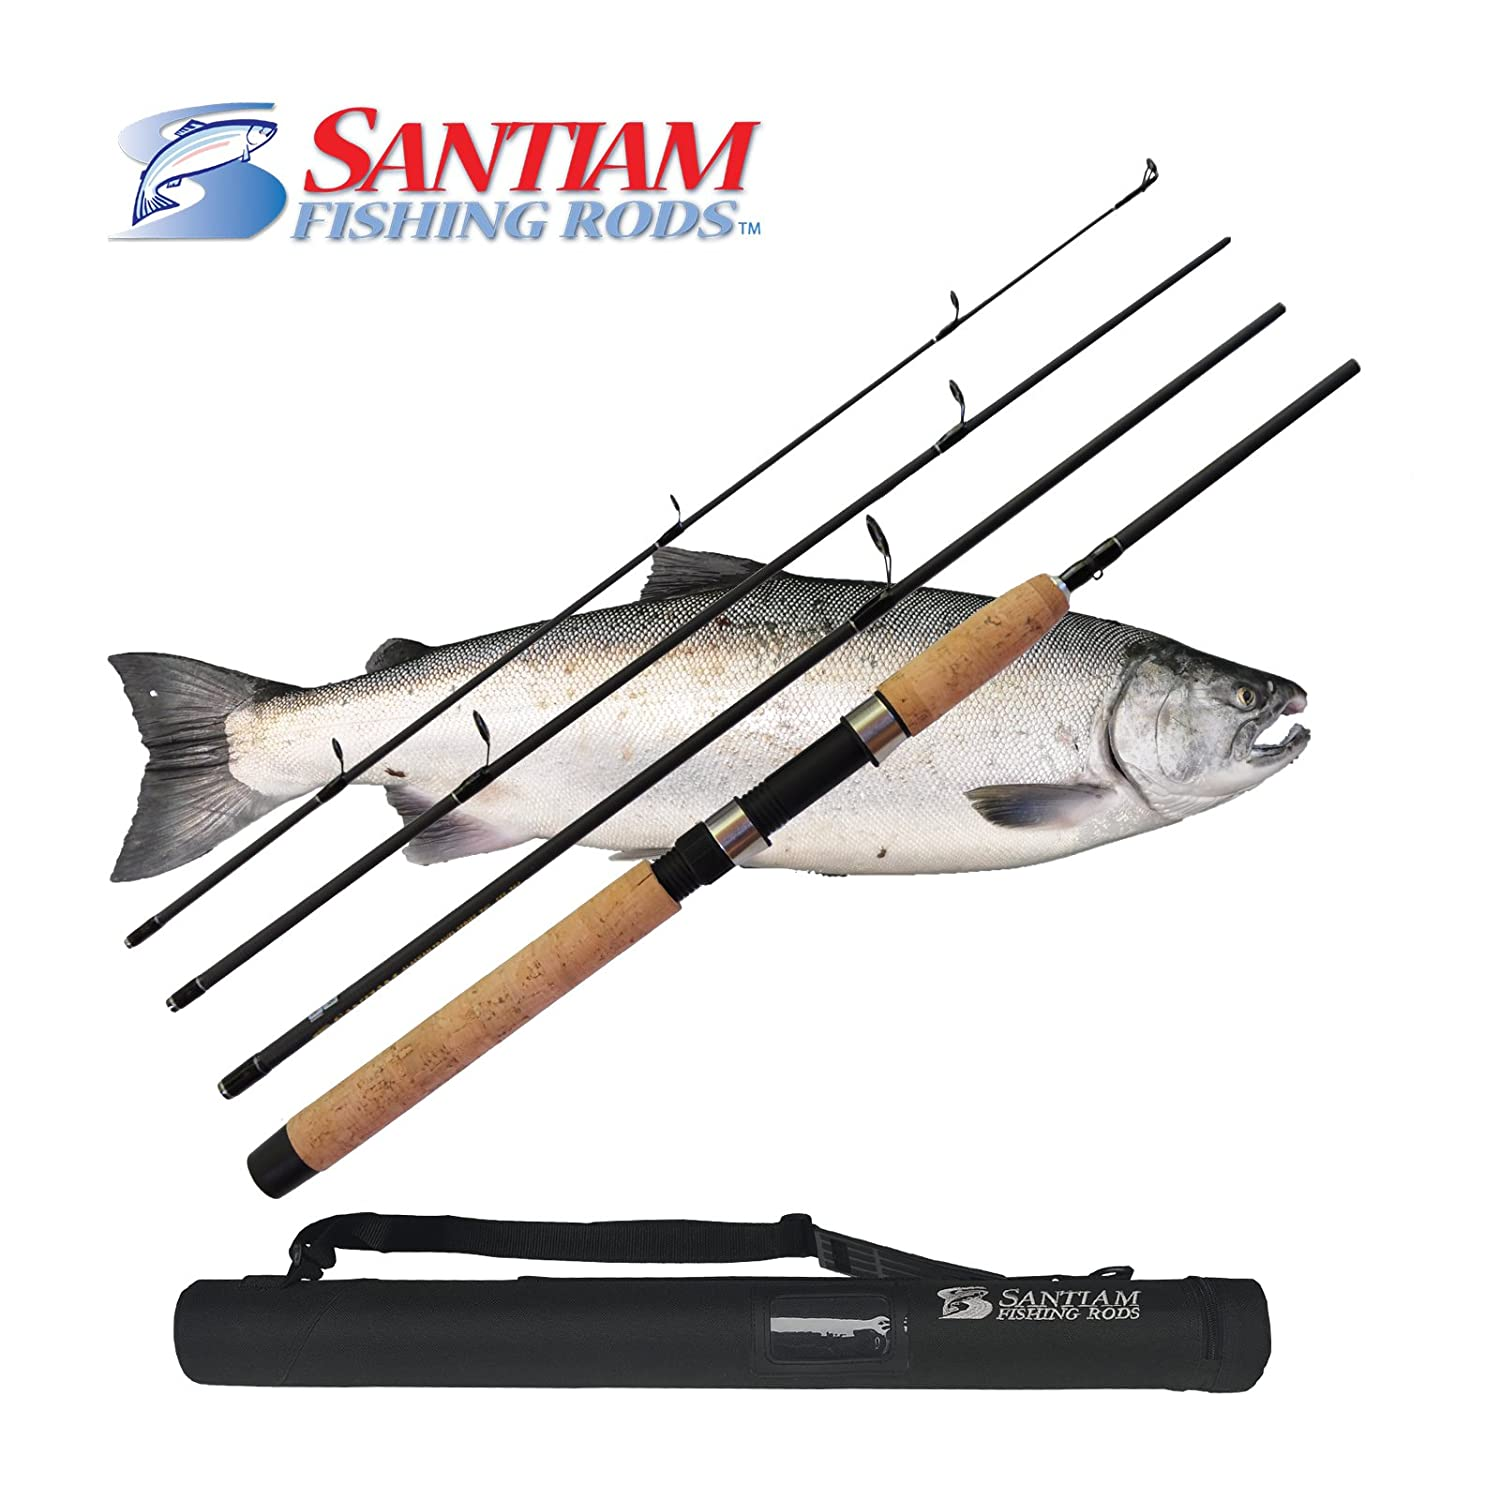 Santiam Fishing Rods Travel Rod 4 Piece 7 6 8-17lb MF Graphite Spinning Rod with Hard Case